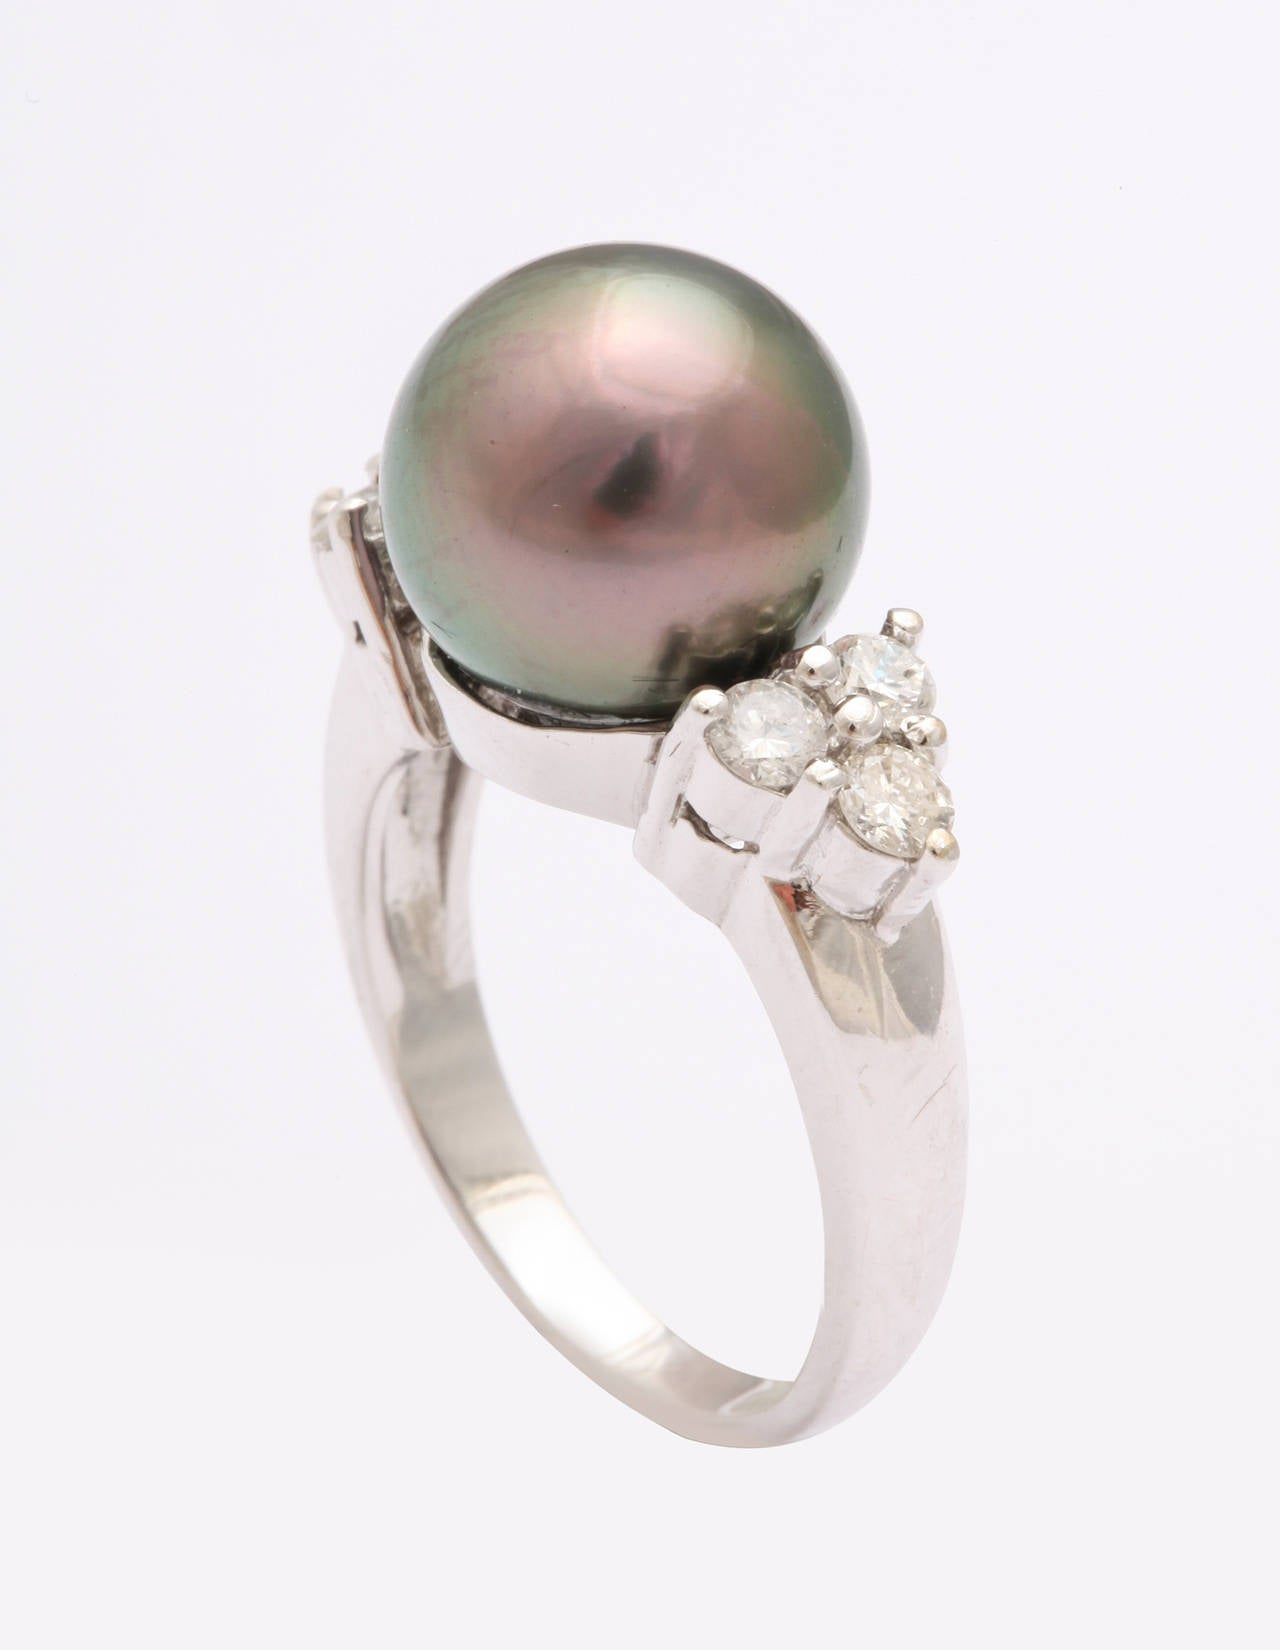 rings gold real image ring matt akoya amp engagement aminoff pearls diamond white pearl japanese